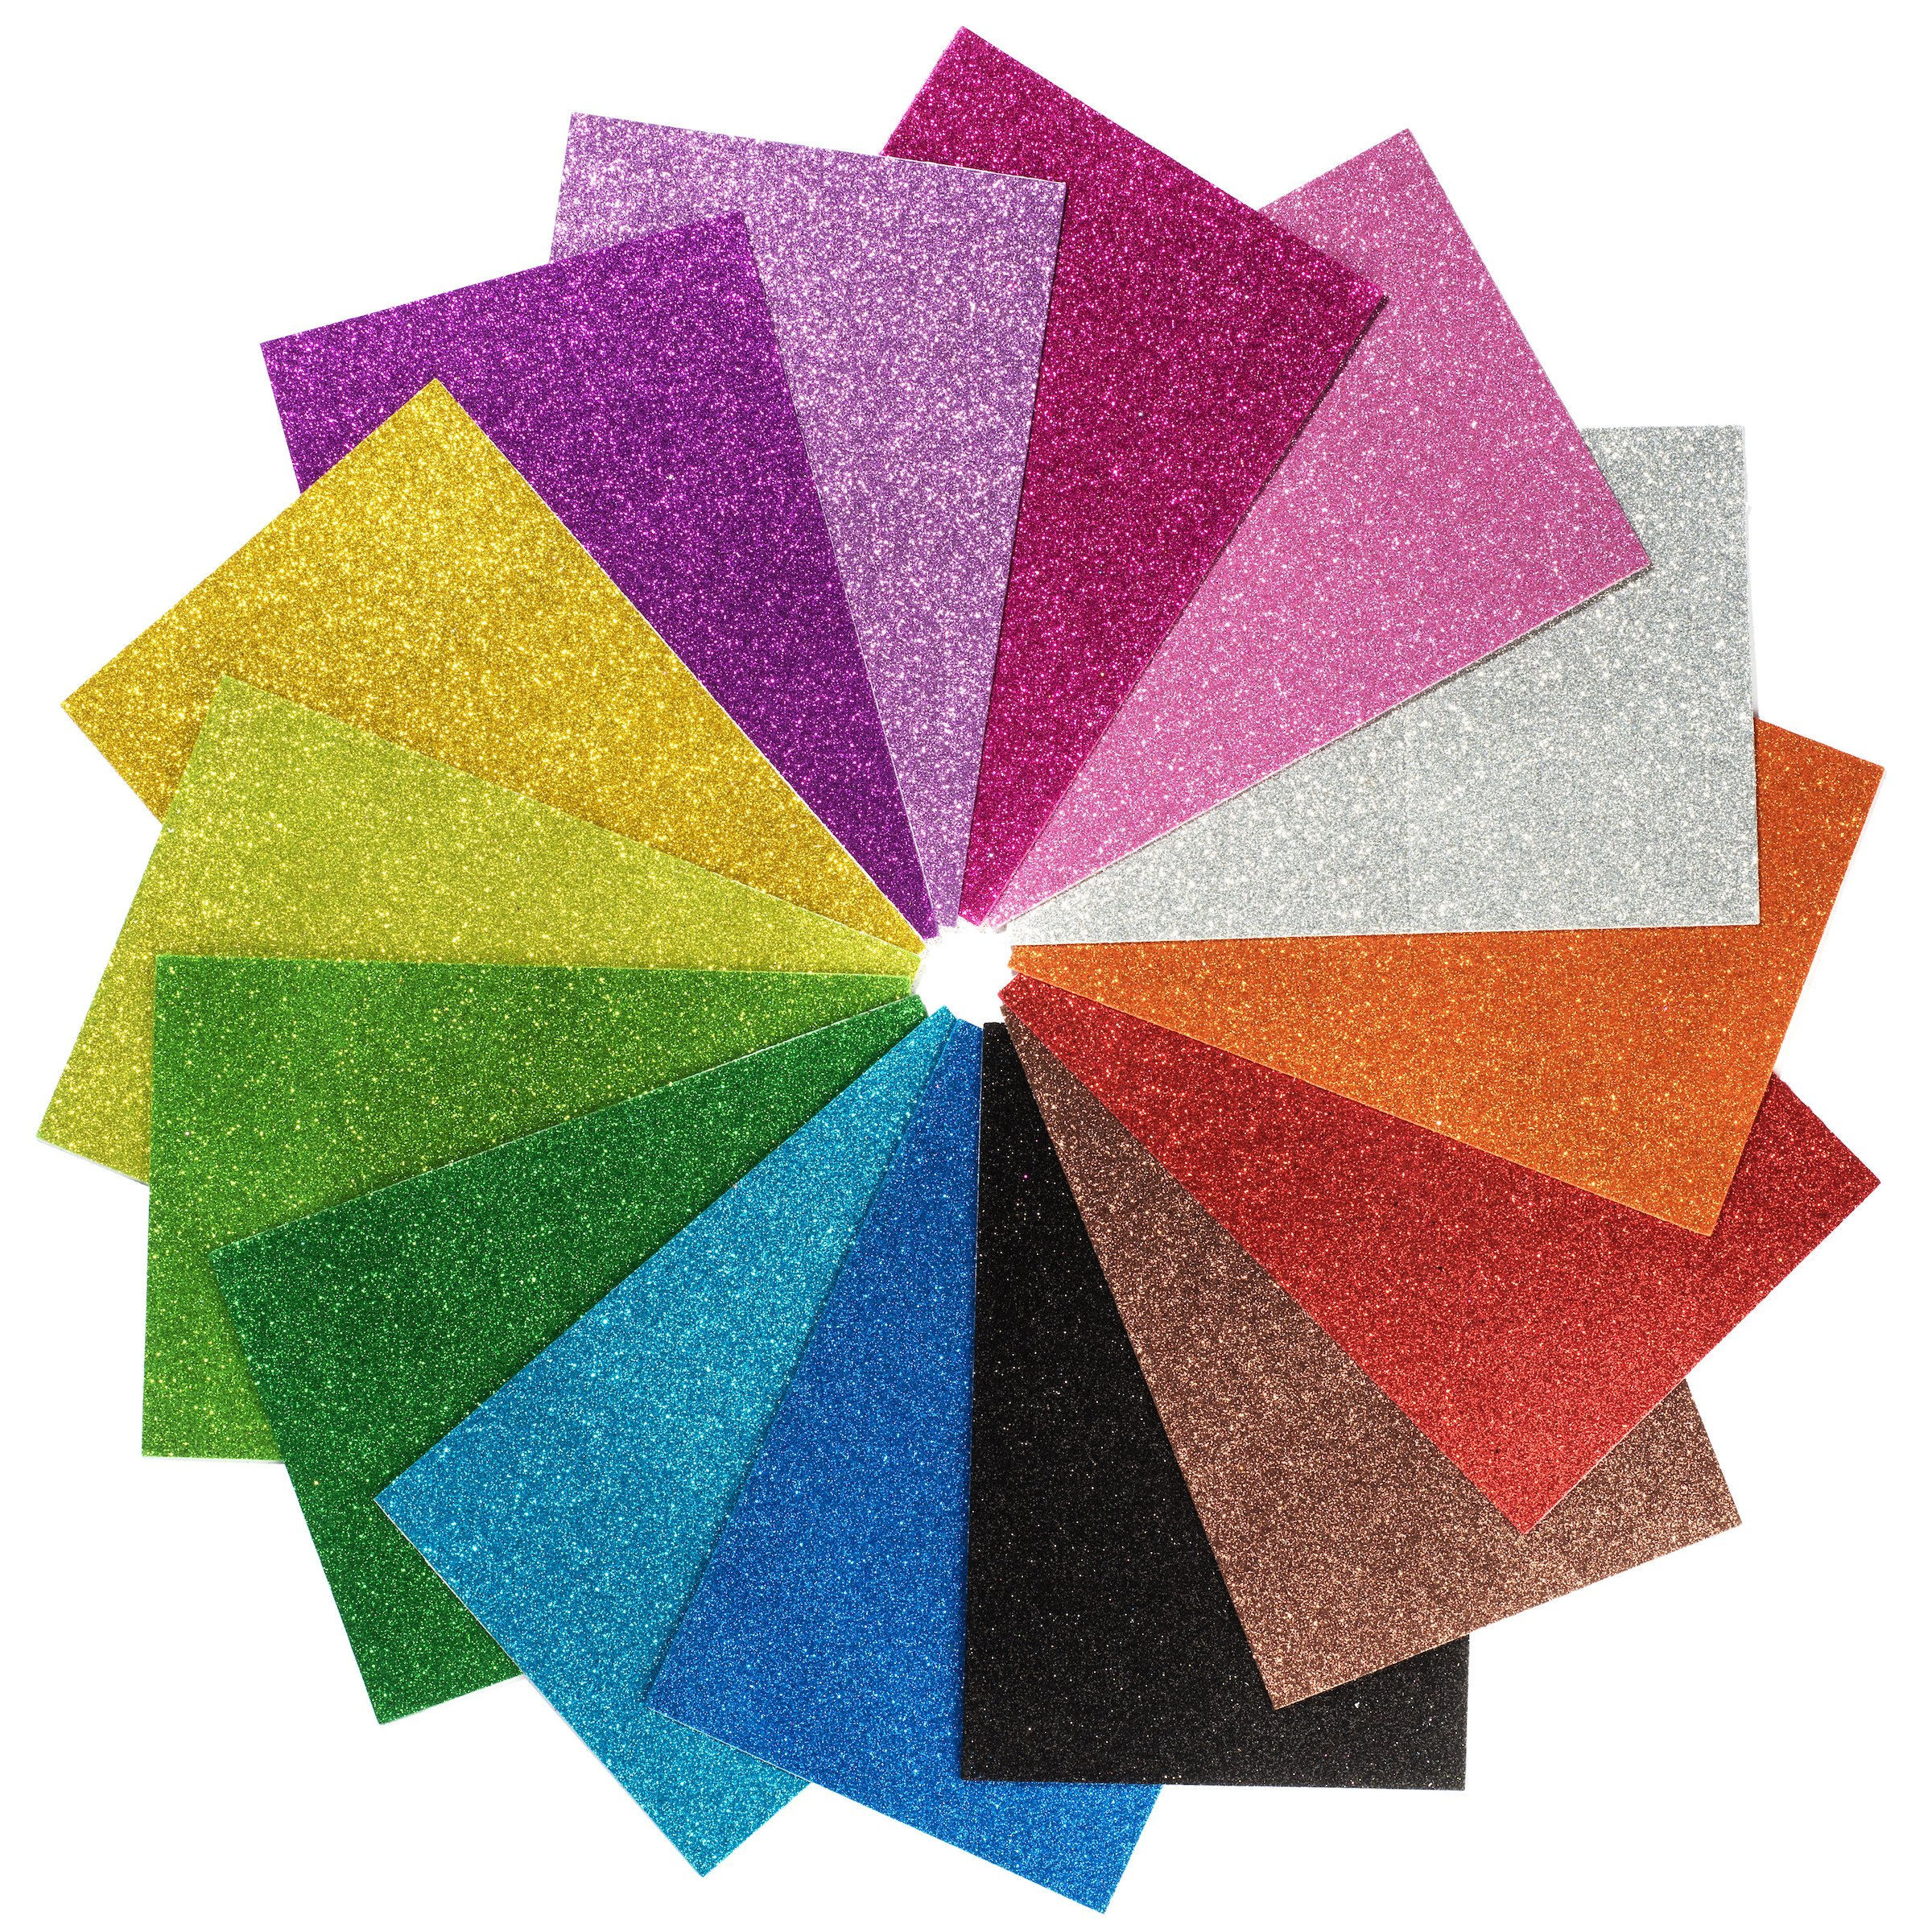 Peachy Keen Crafts - 15 Pack Self Adhesive Glitter Foam Paper Sheets - Assorted Colors - Perfect for Kids Art Projects and Classrooms